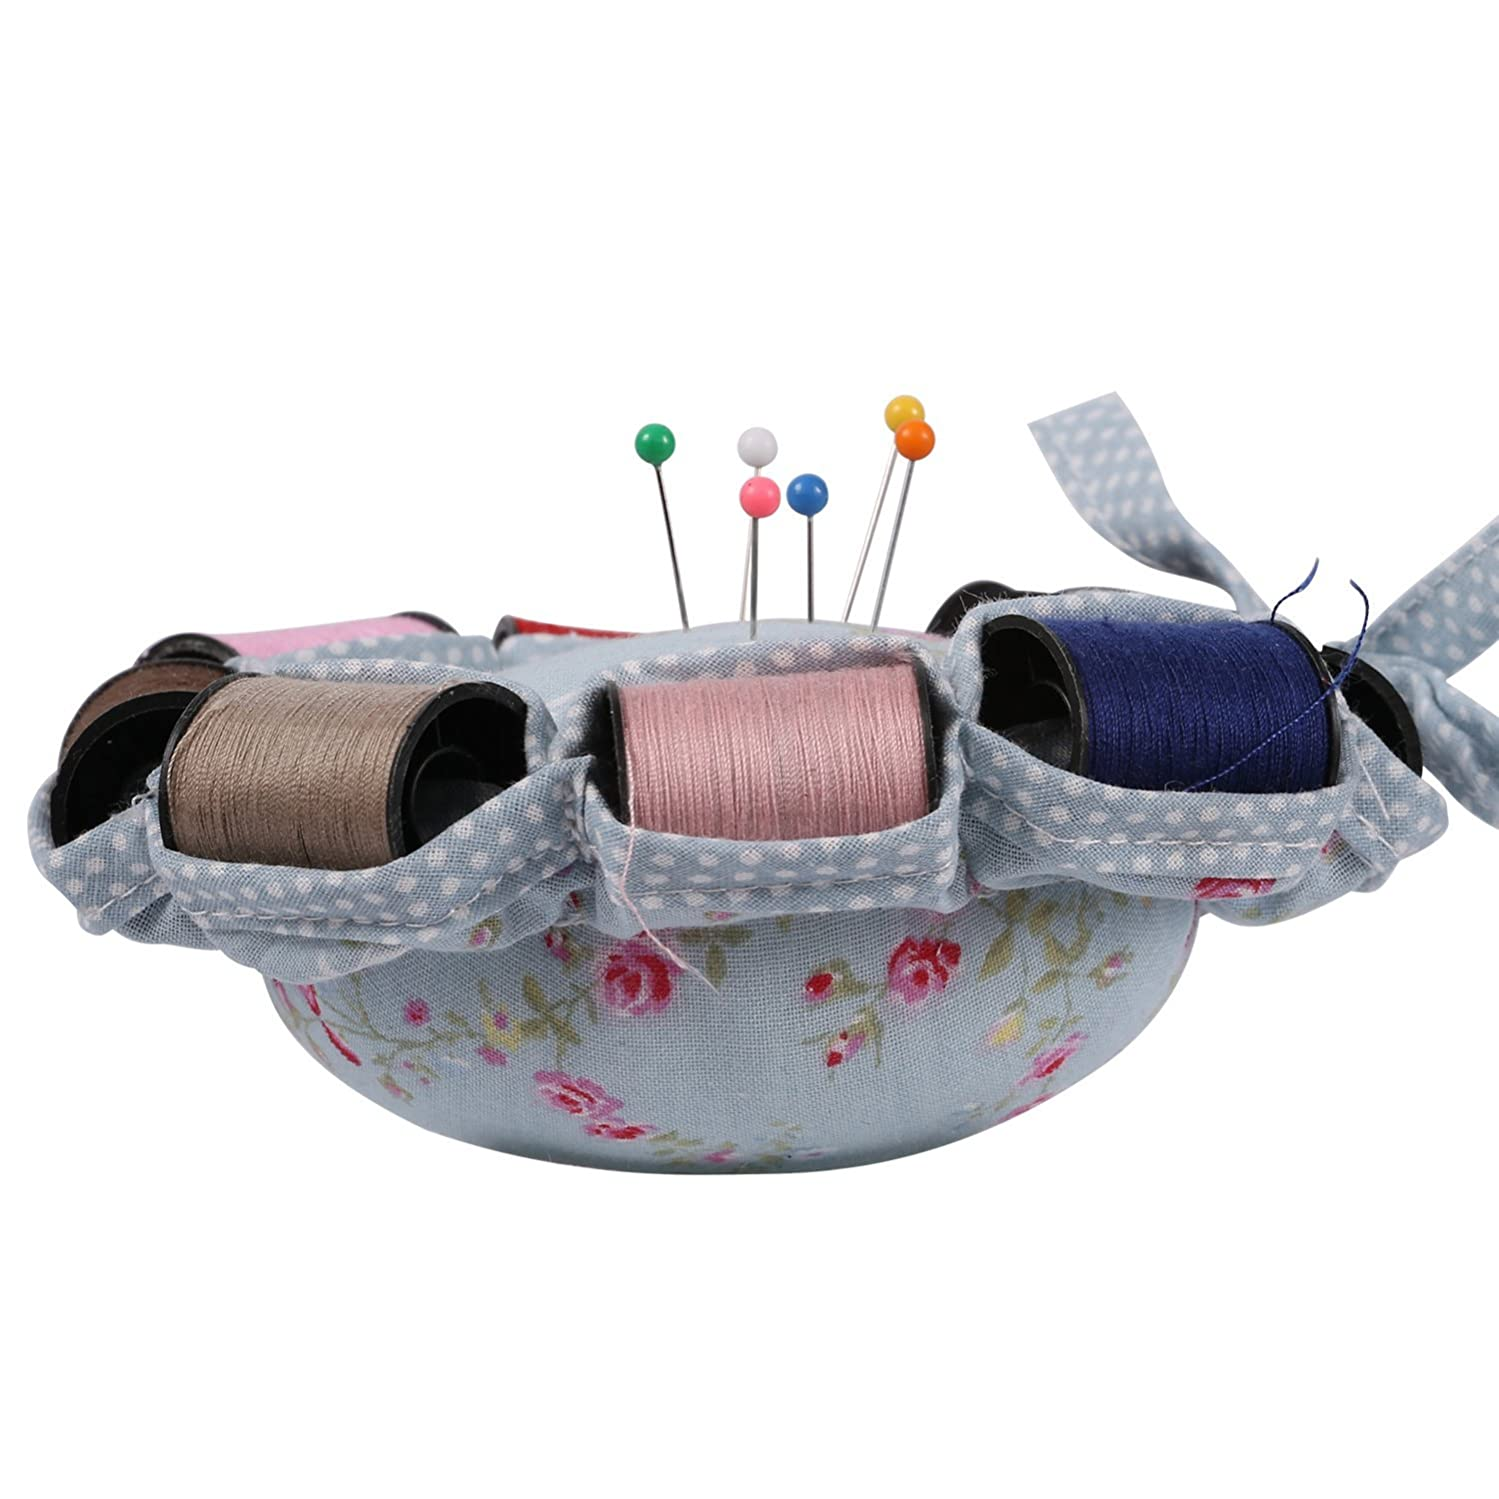 NEOVIVA Fabric Coated Fully Padded Pincushion with 8 Replaceable Rolls of Threads, Floral Blue Ocean